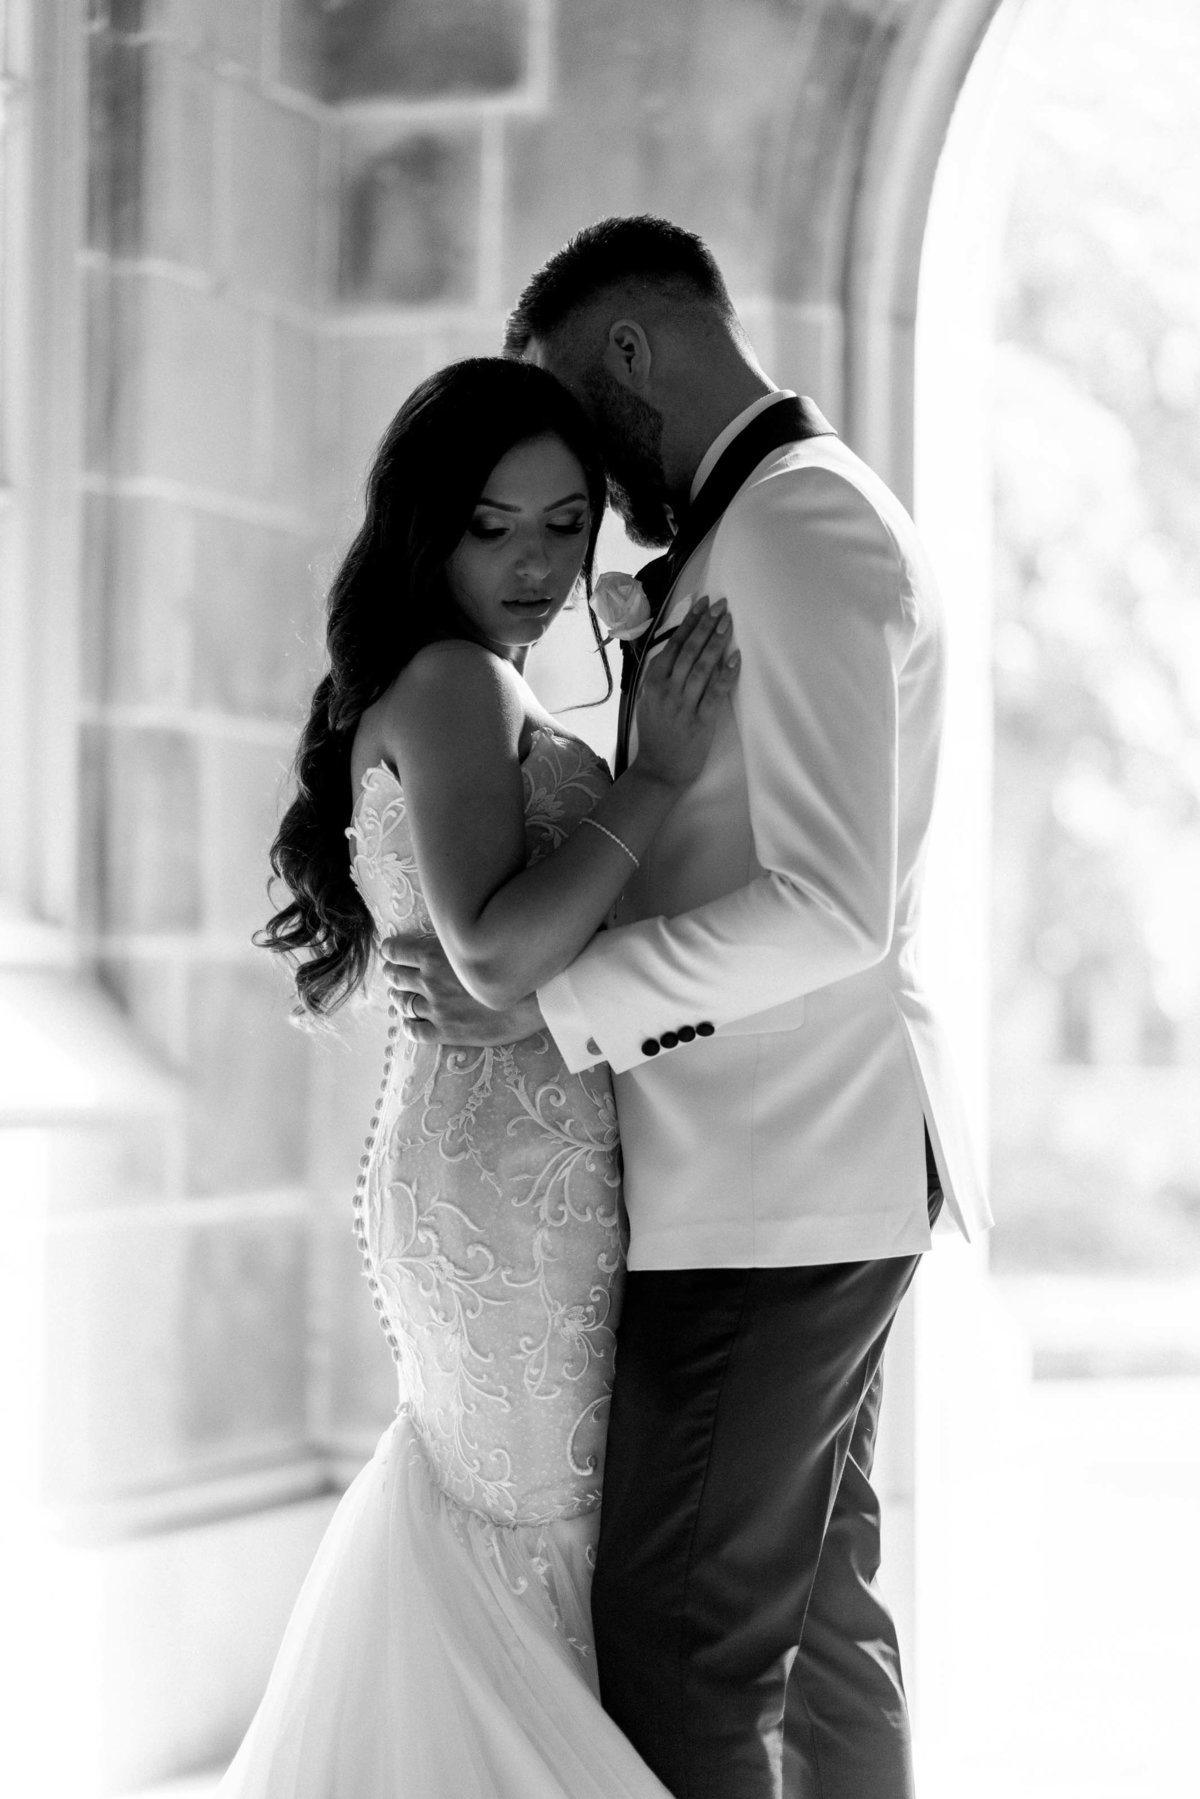 classy-romantic-wedding-melbourne-university-07001